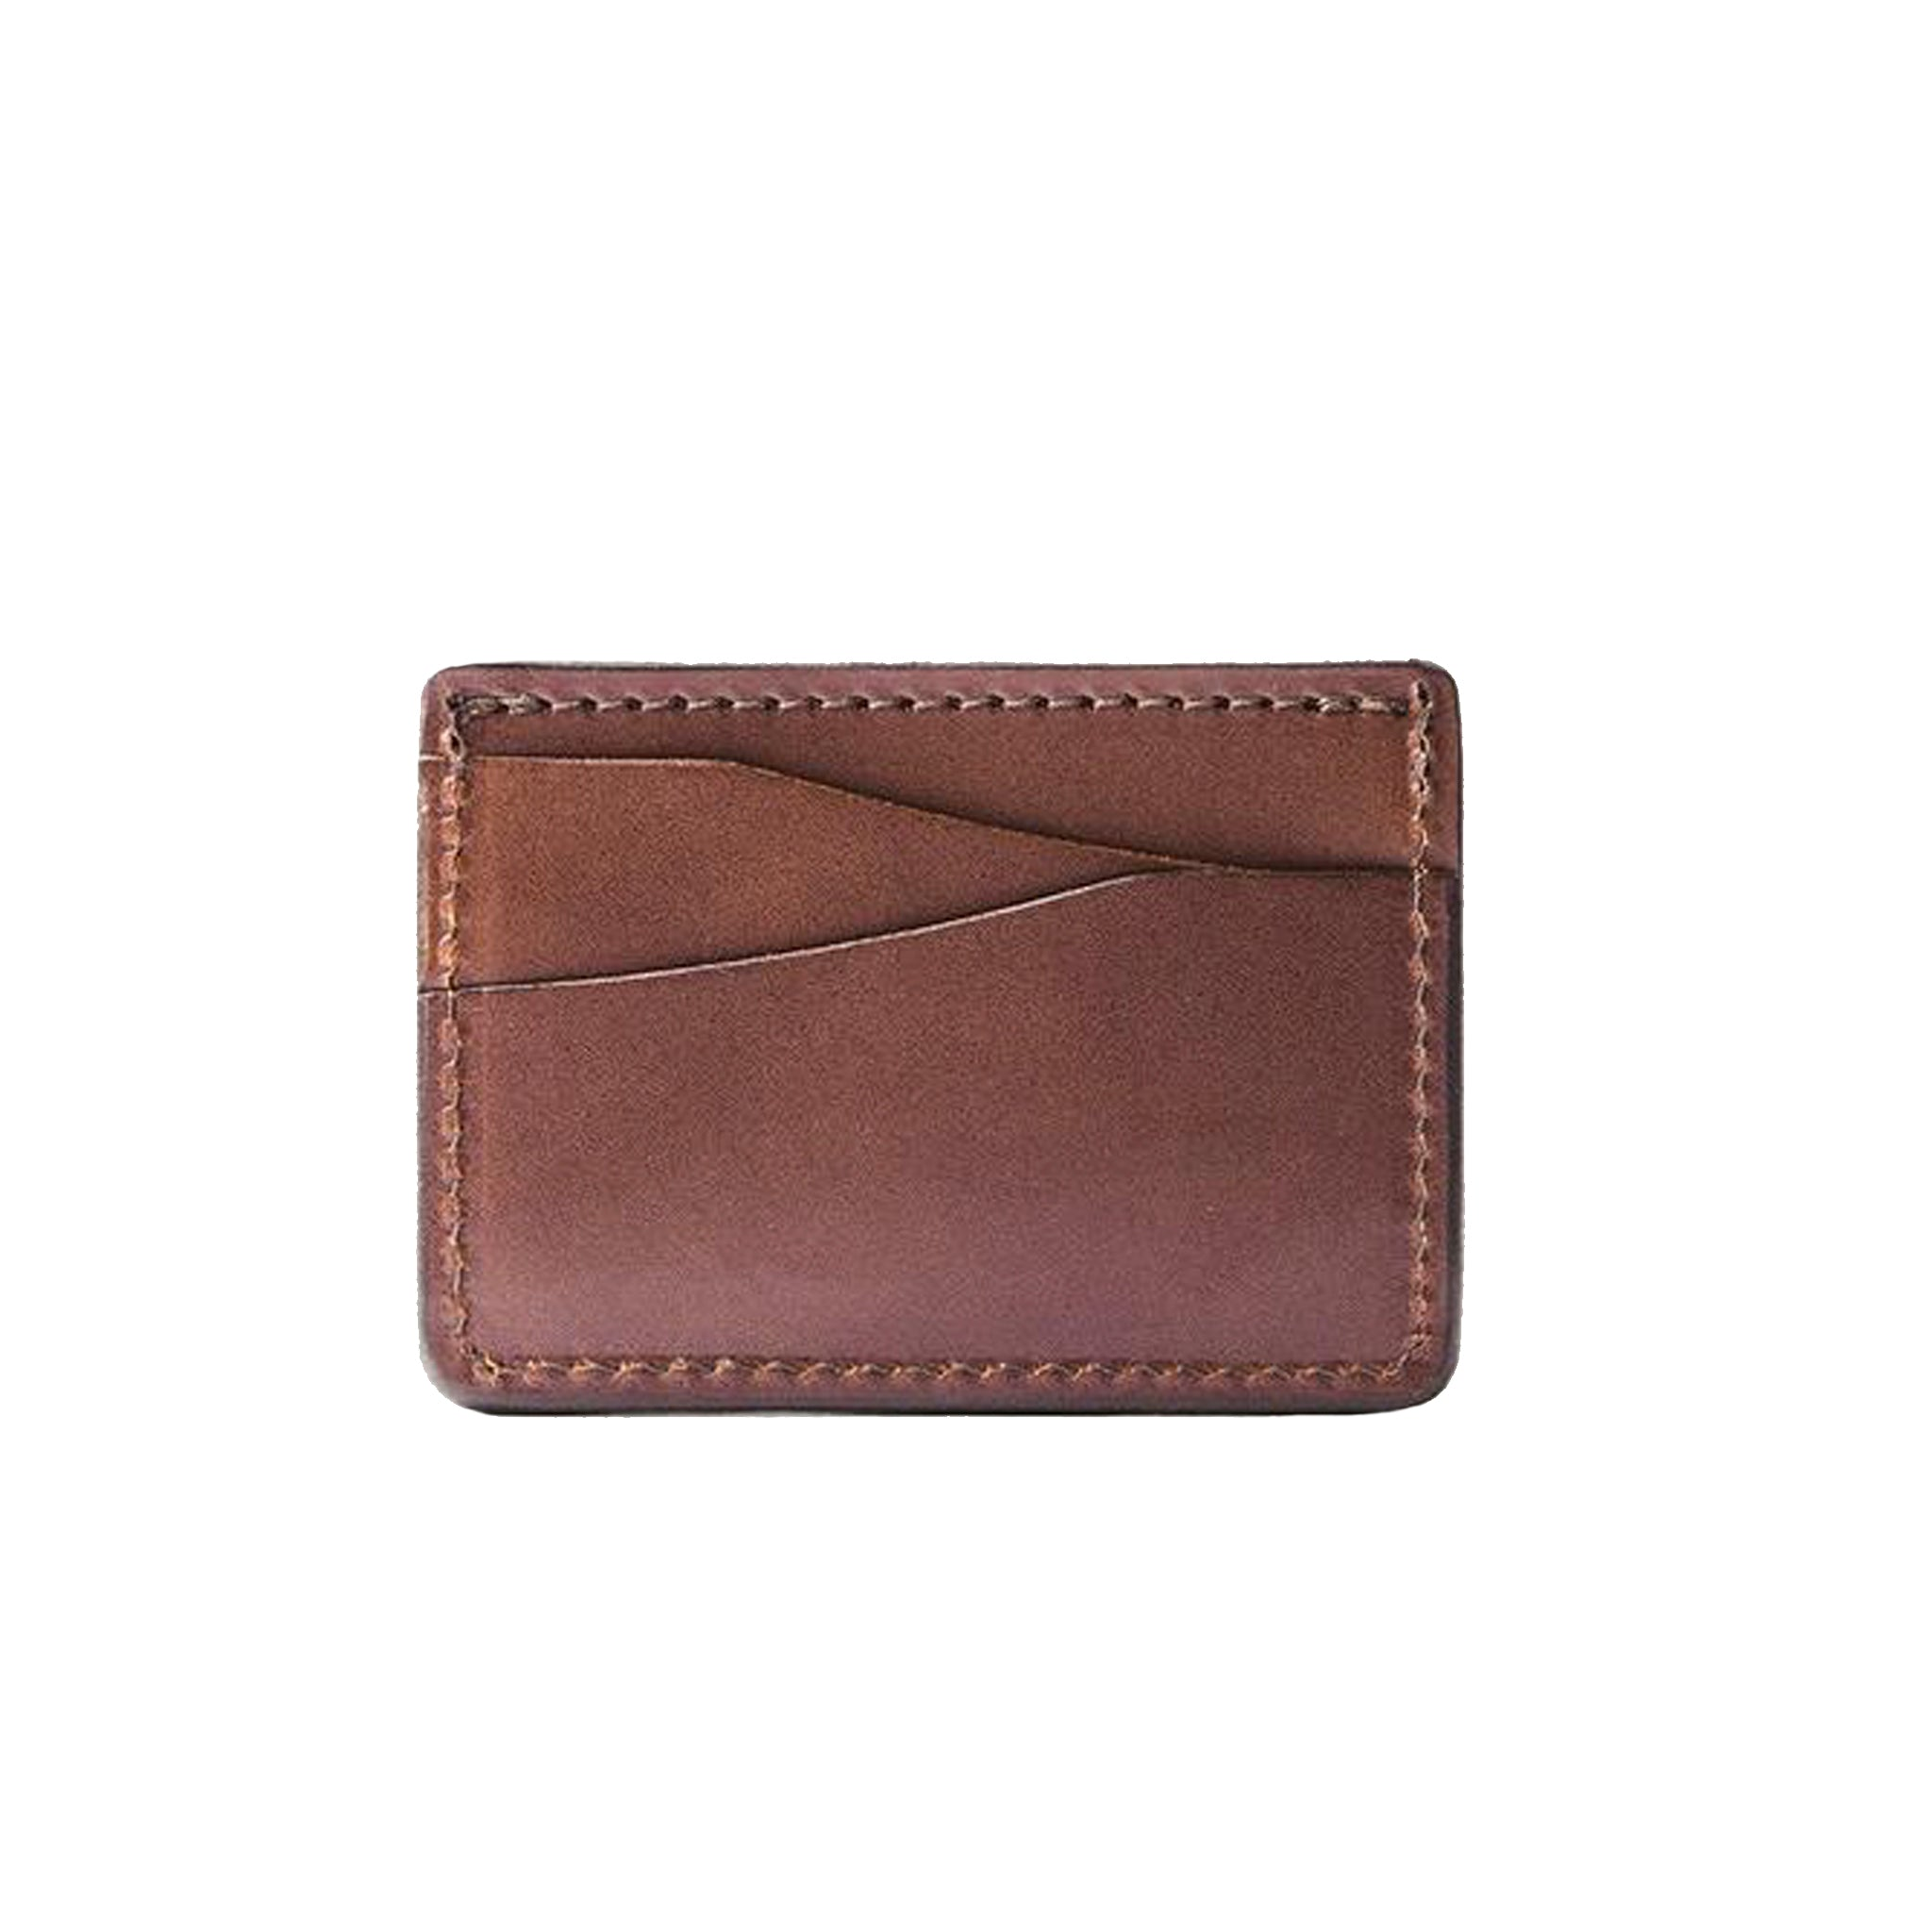 Tanner Goods Journeyman Card Wallet in Cognac